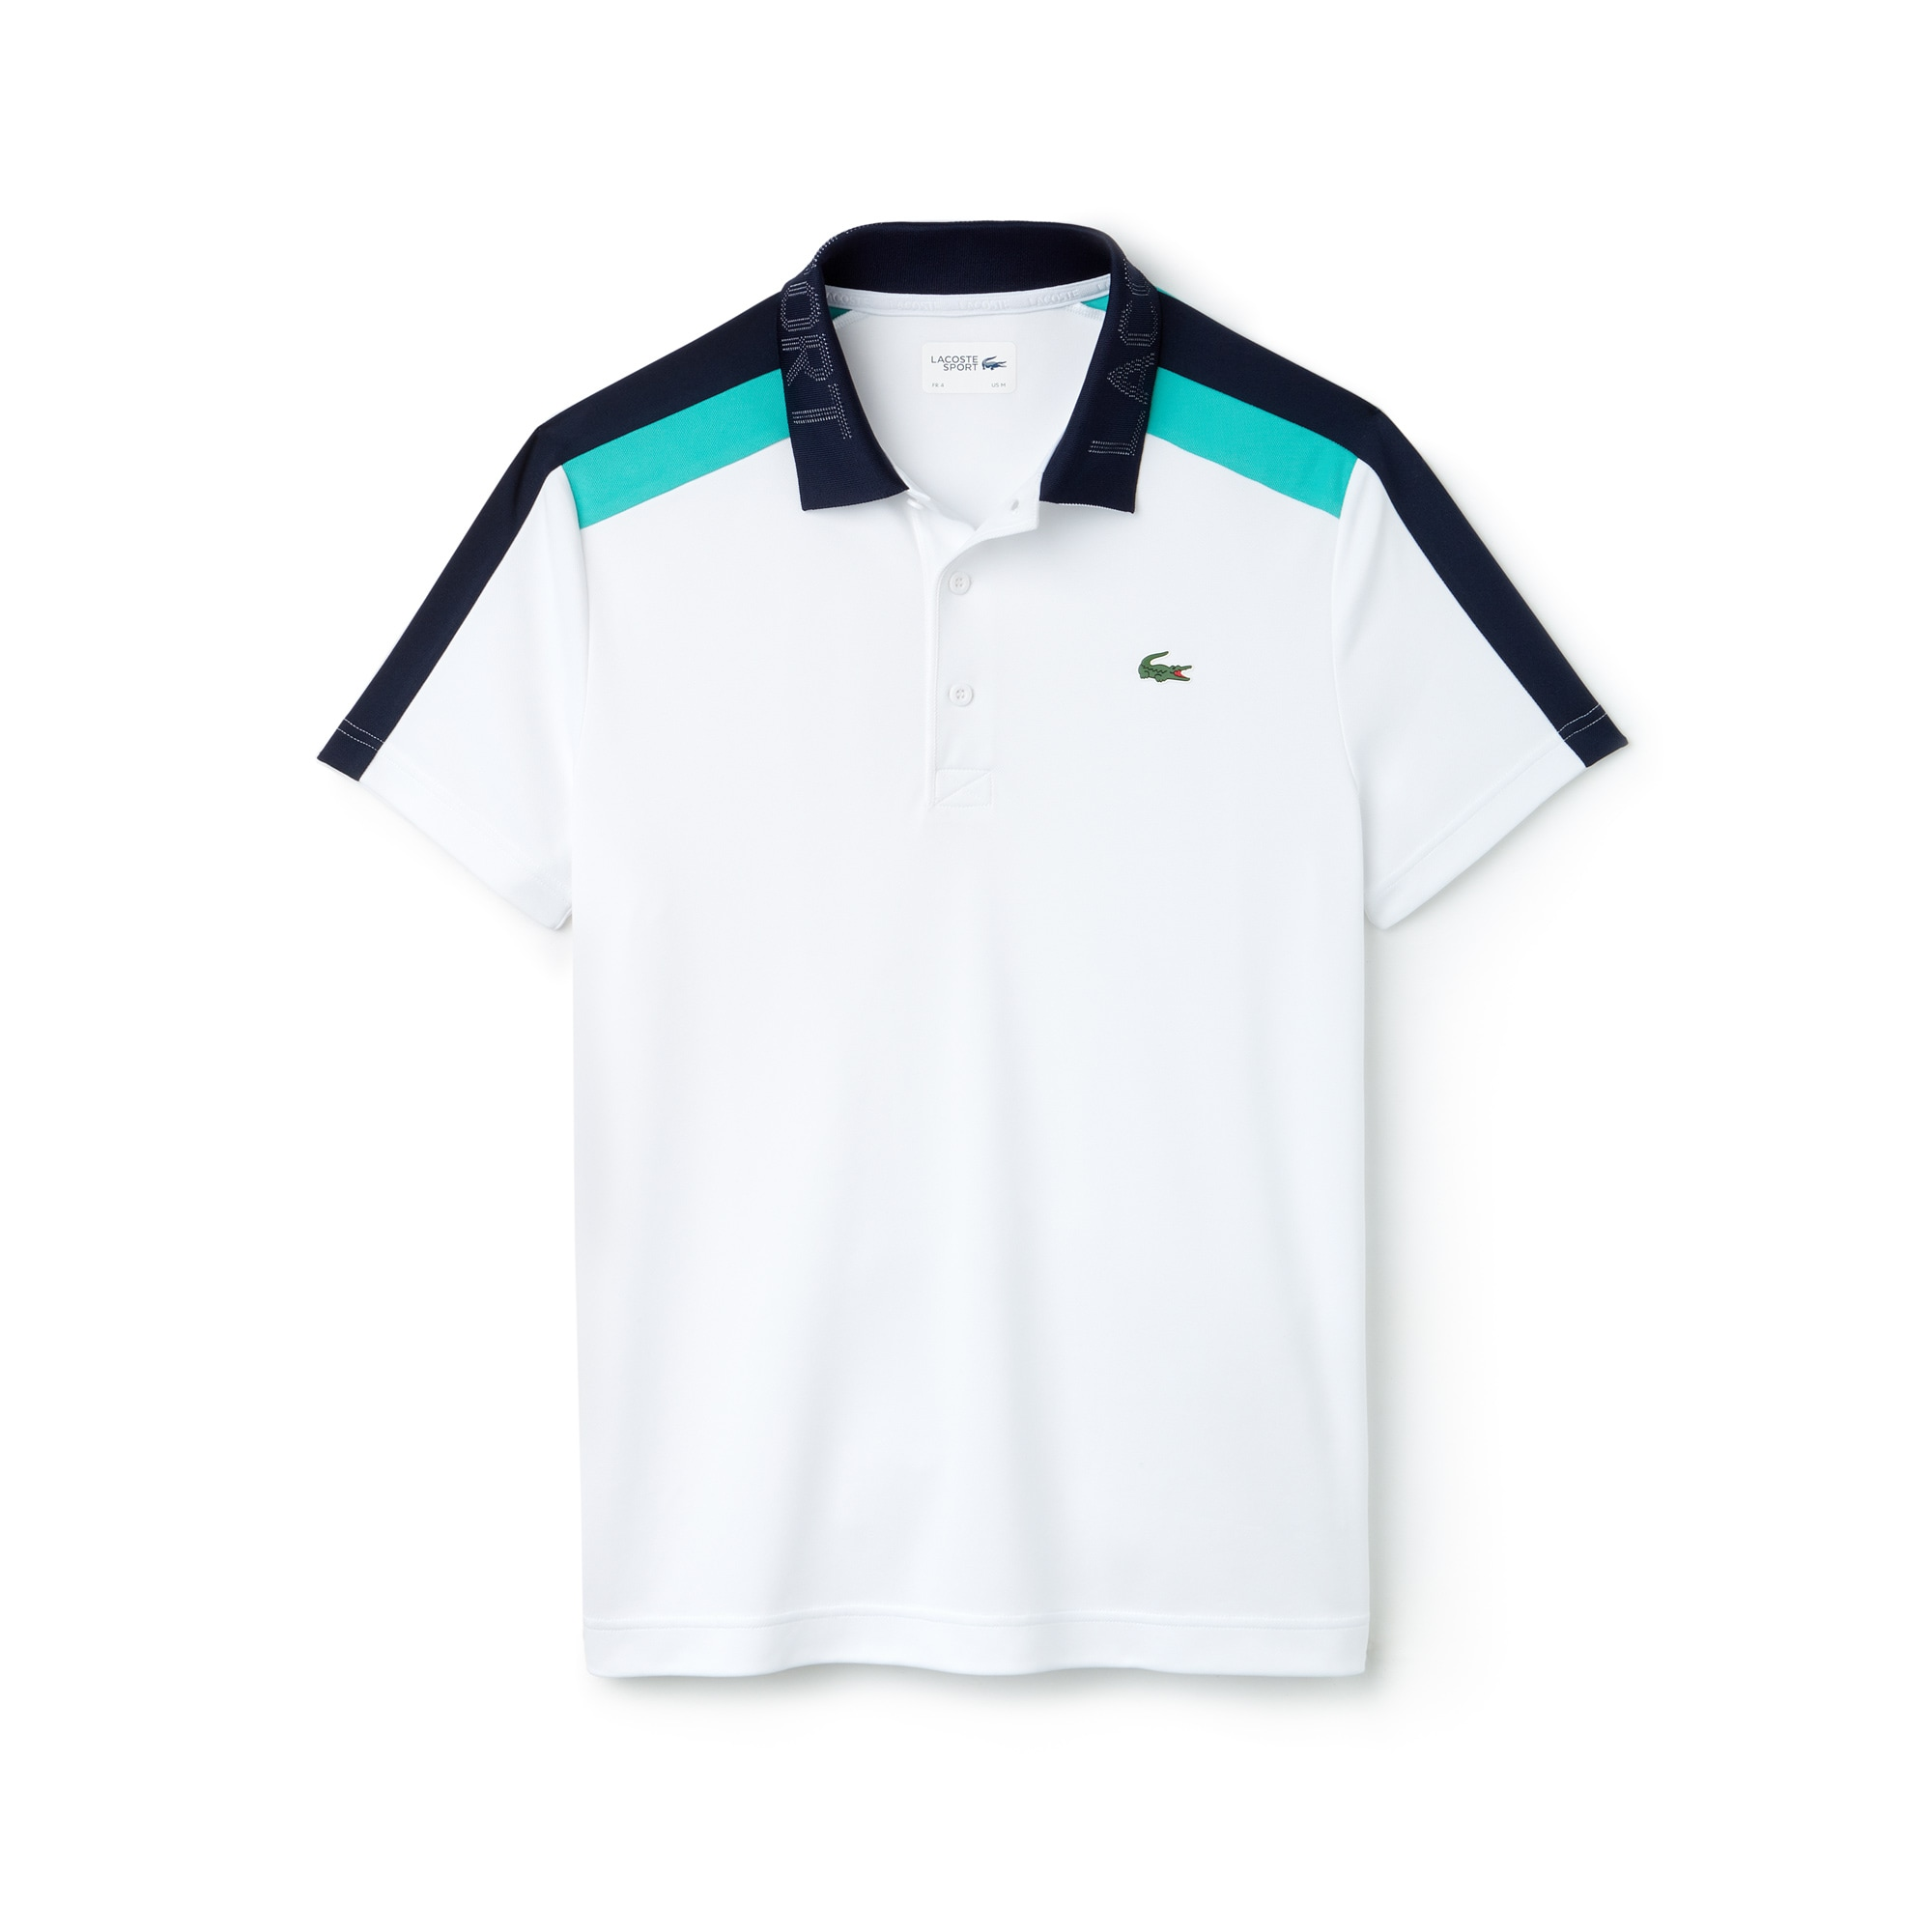 Men's Lacoste SPORT Contrast Band Technical Piqué Tennis Polo Shirt